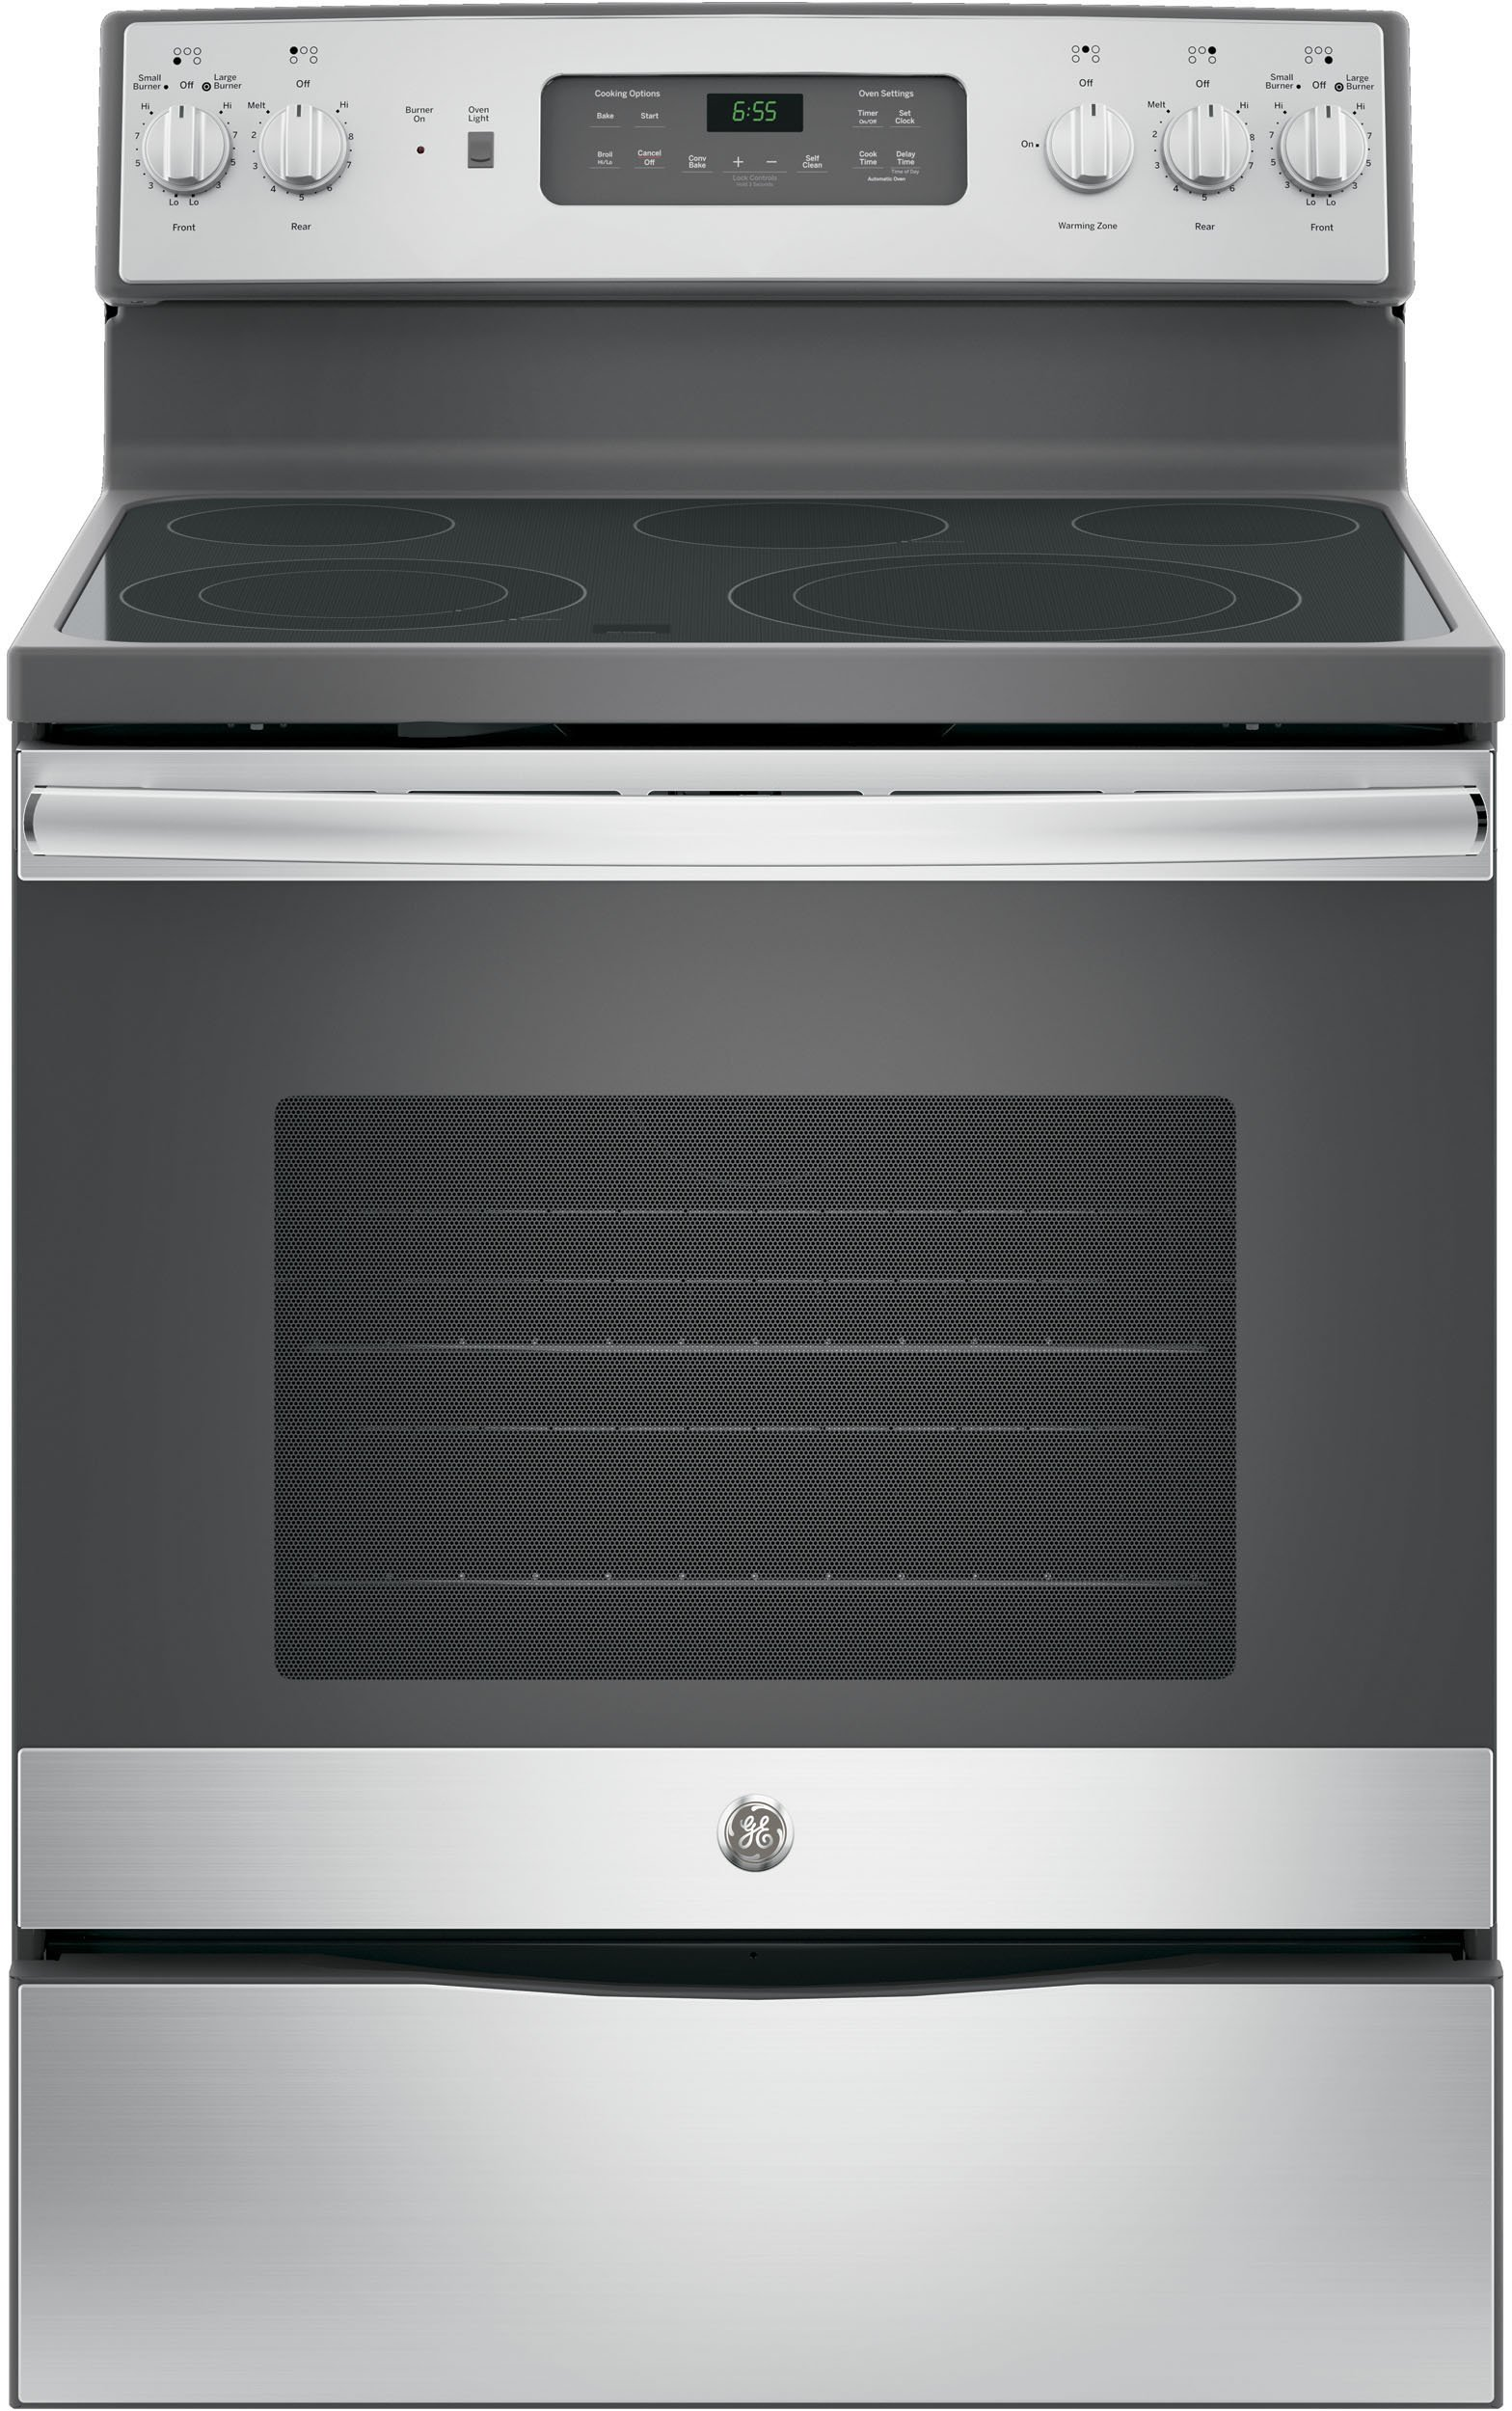 GE JB655SKSS 30'' Star K Freestanding Electric Range with 5 Radiant Elements, 5.3 cu. ft. Oven Capacity, Stainless Steel